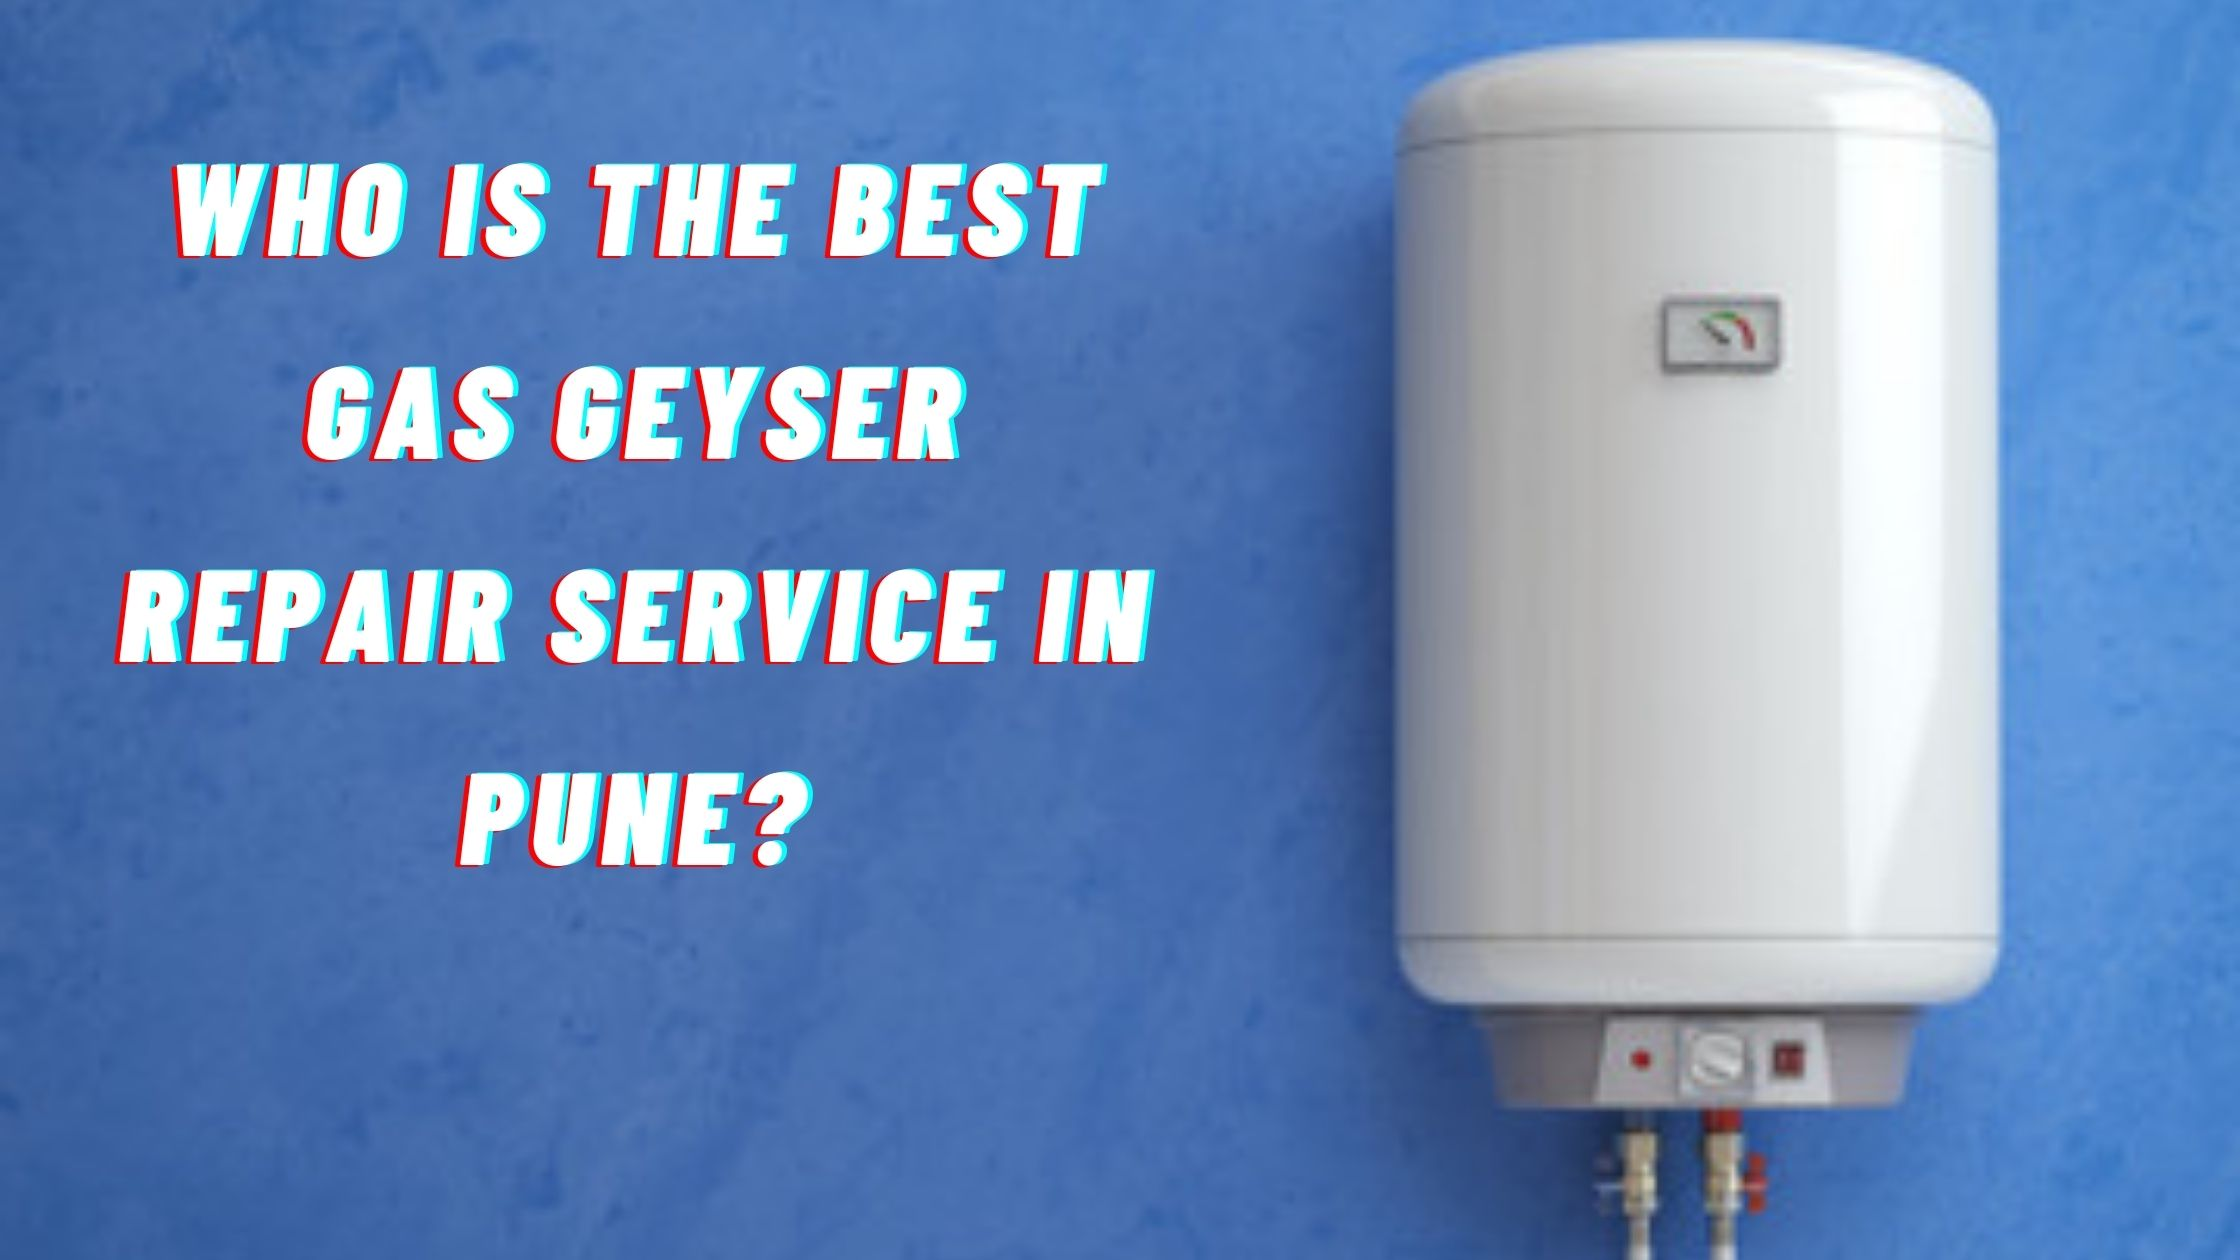 Who is the best gas geyser repair services in Pune?